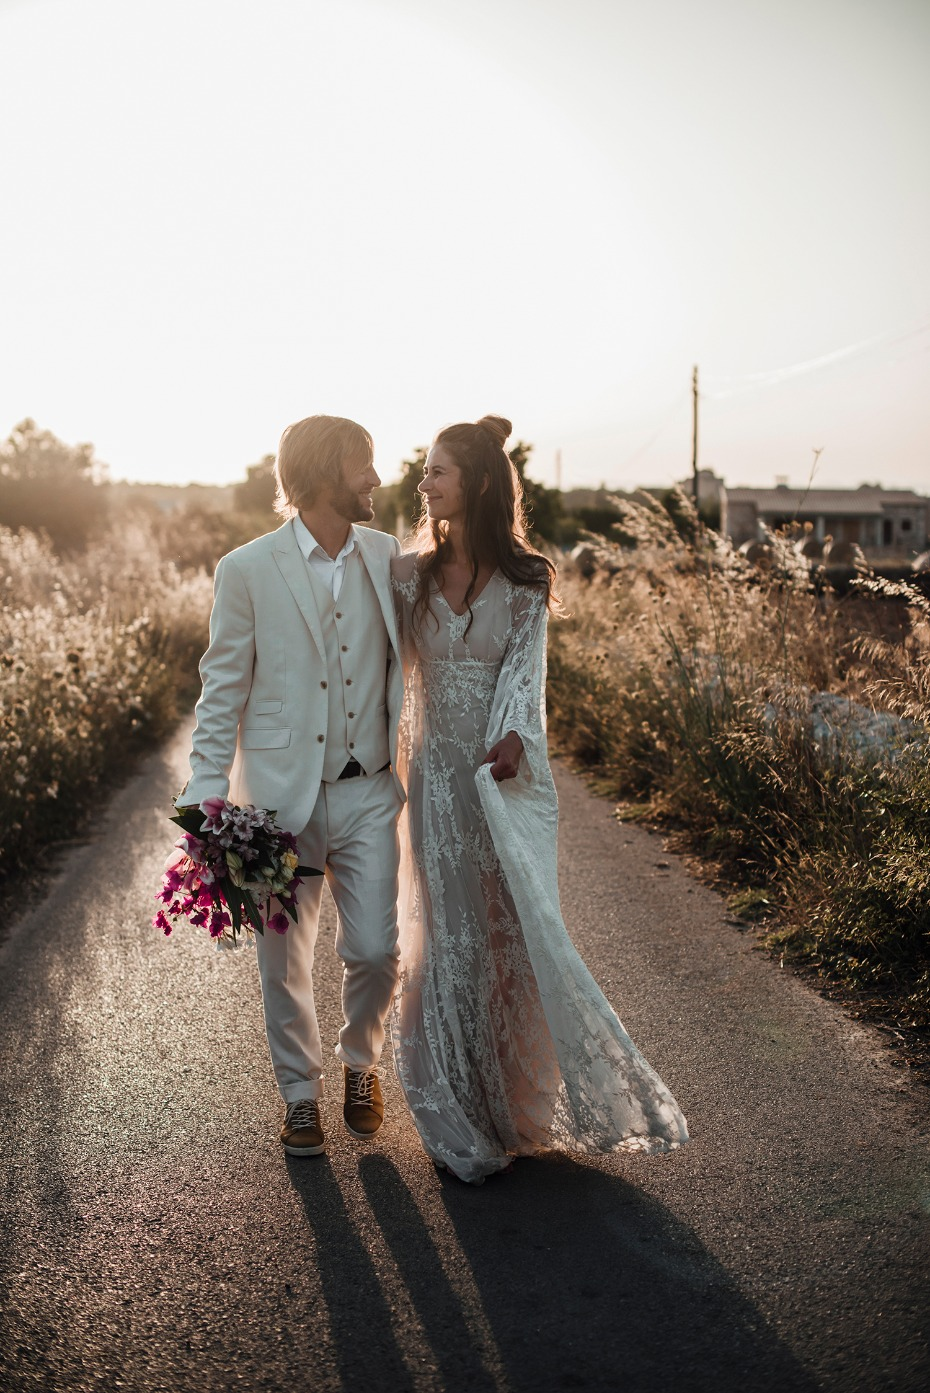 sweet sunset wedding photos